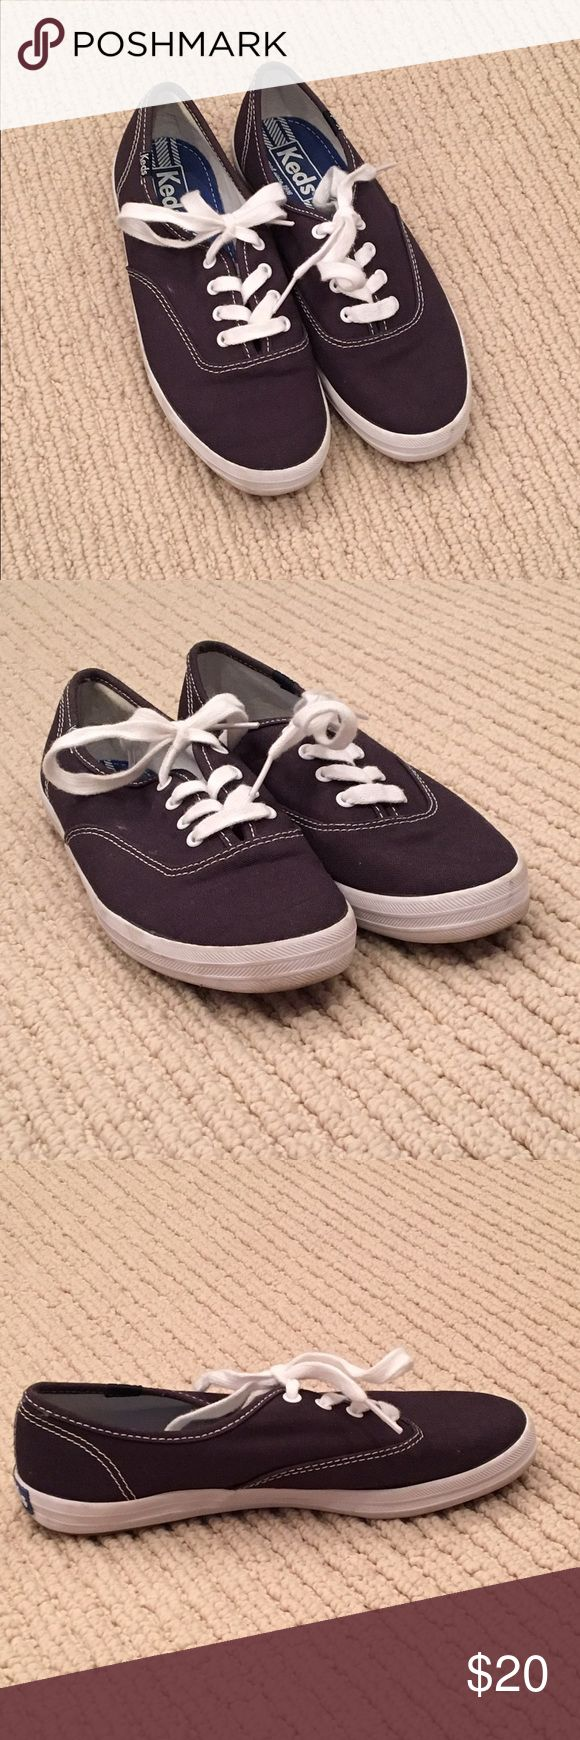 Navy blue Keds Navy blue Keds size 5.5, only worn once. Willing to trade for something reasonable. Keds Shoes Sneakers